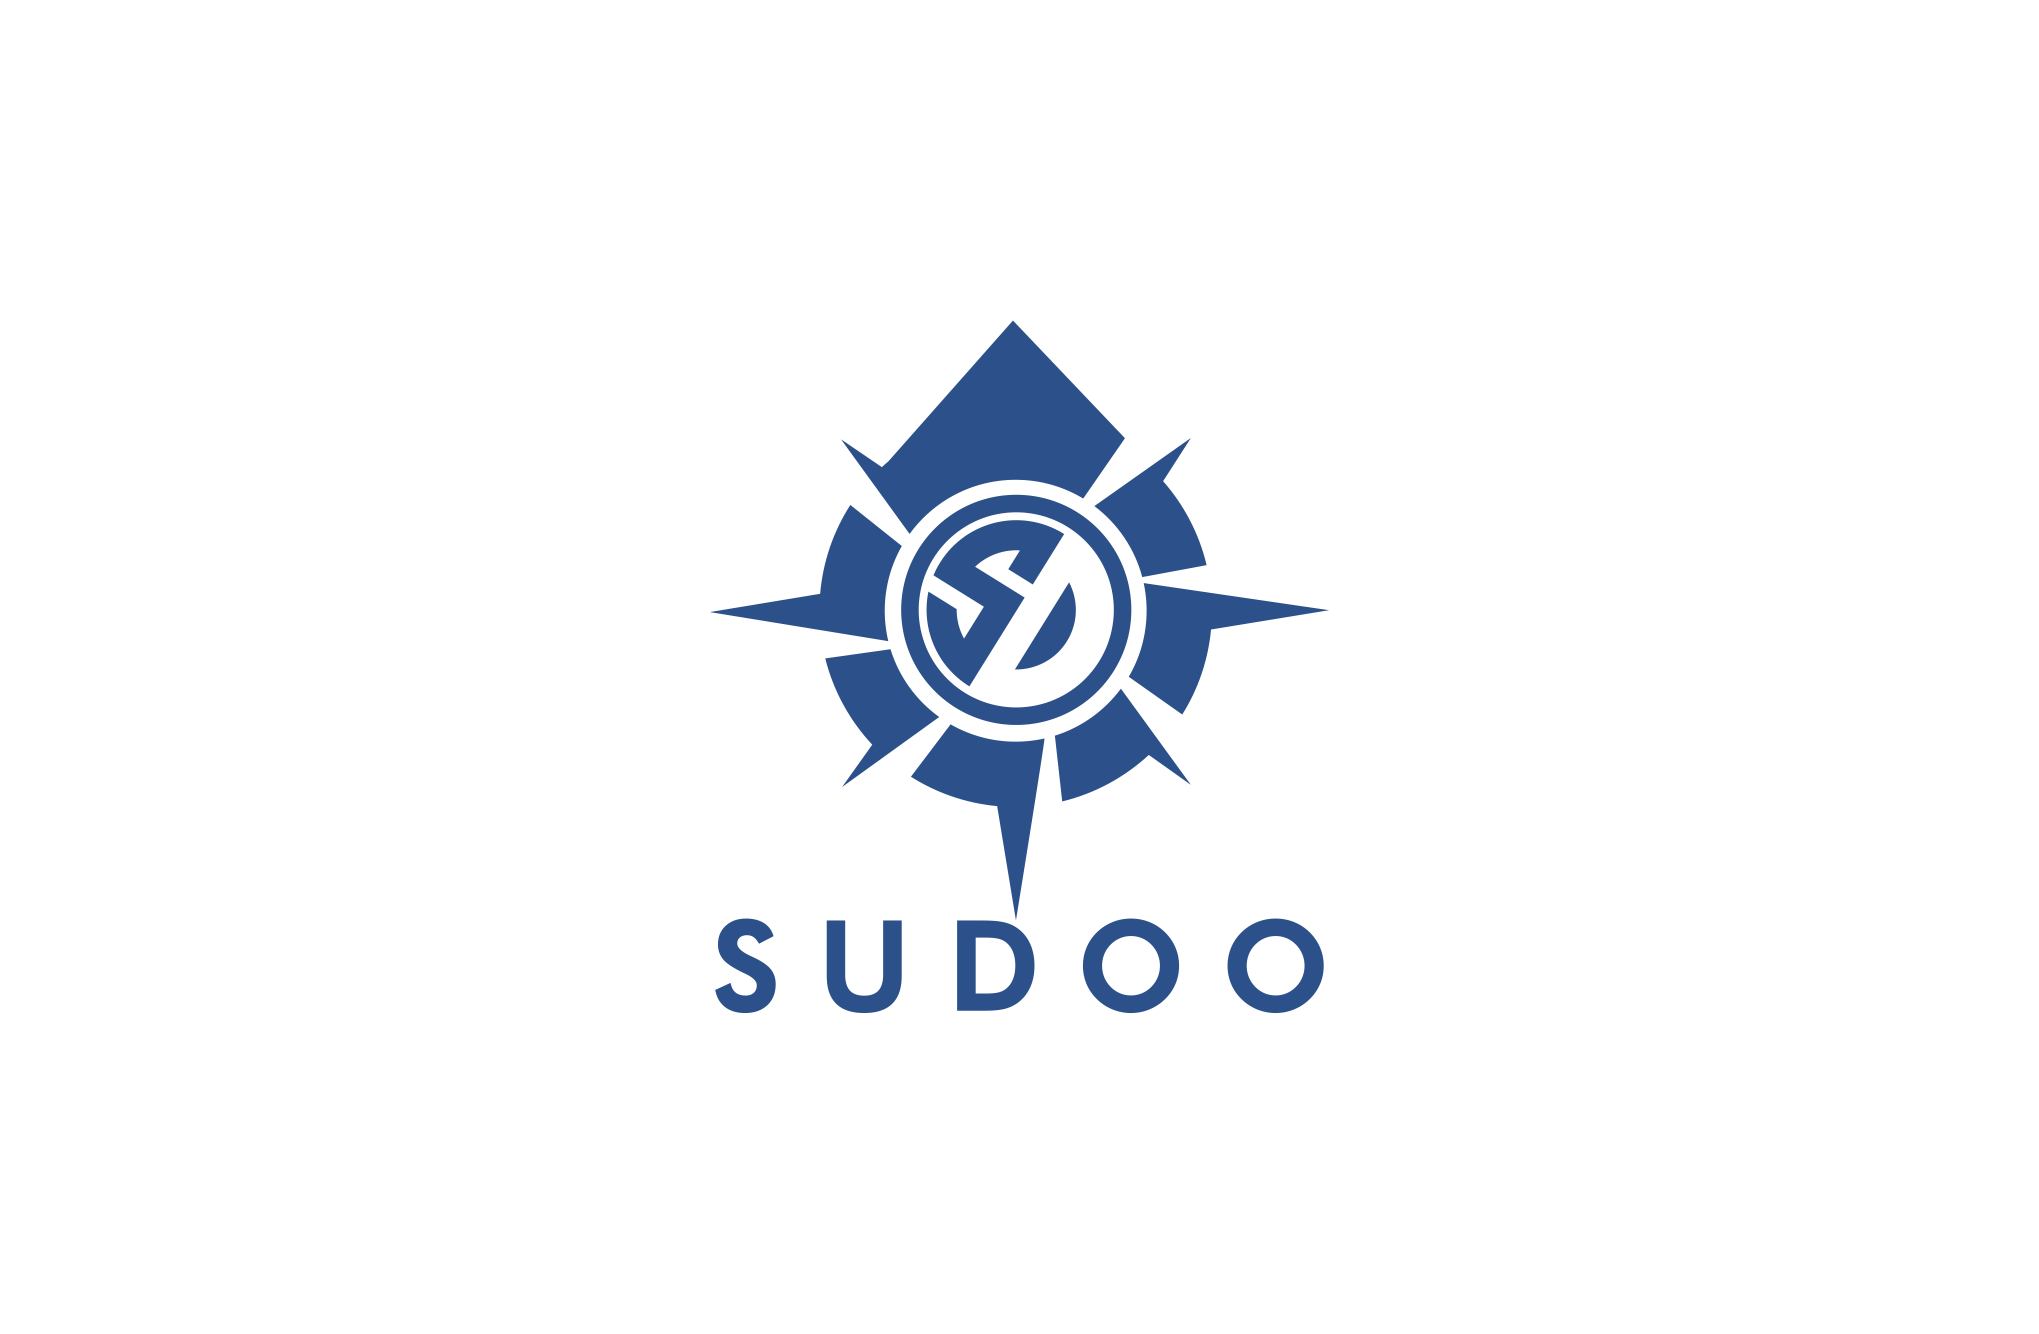 SUDOO Boards